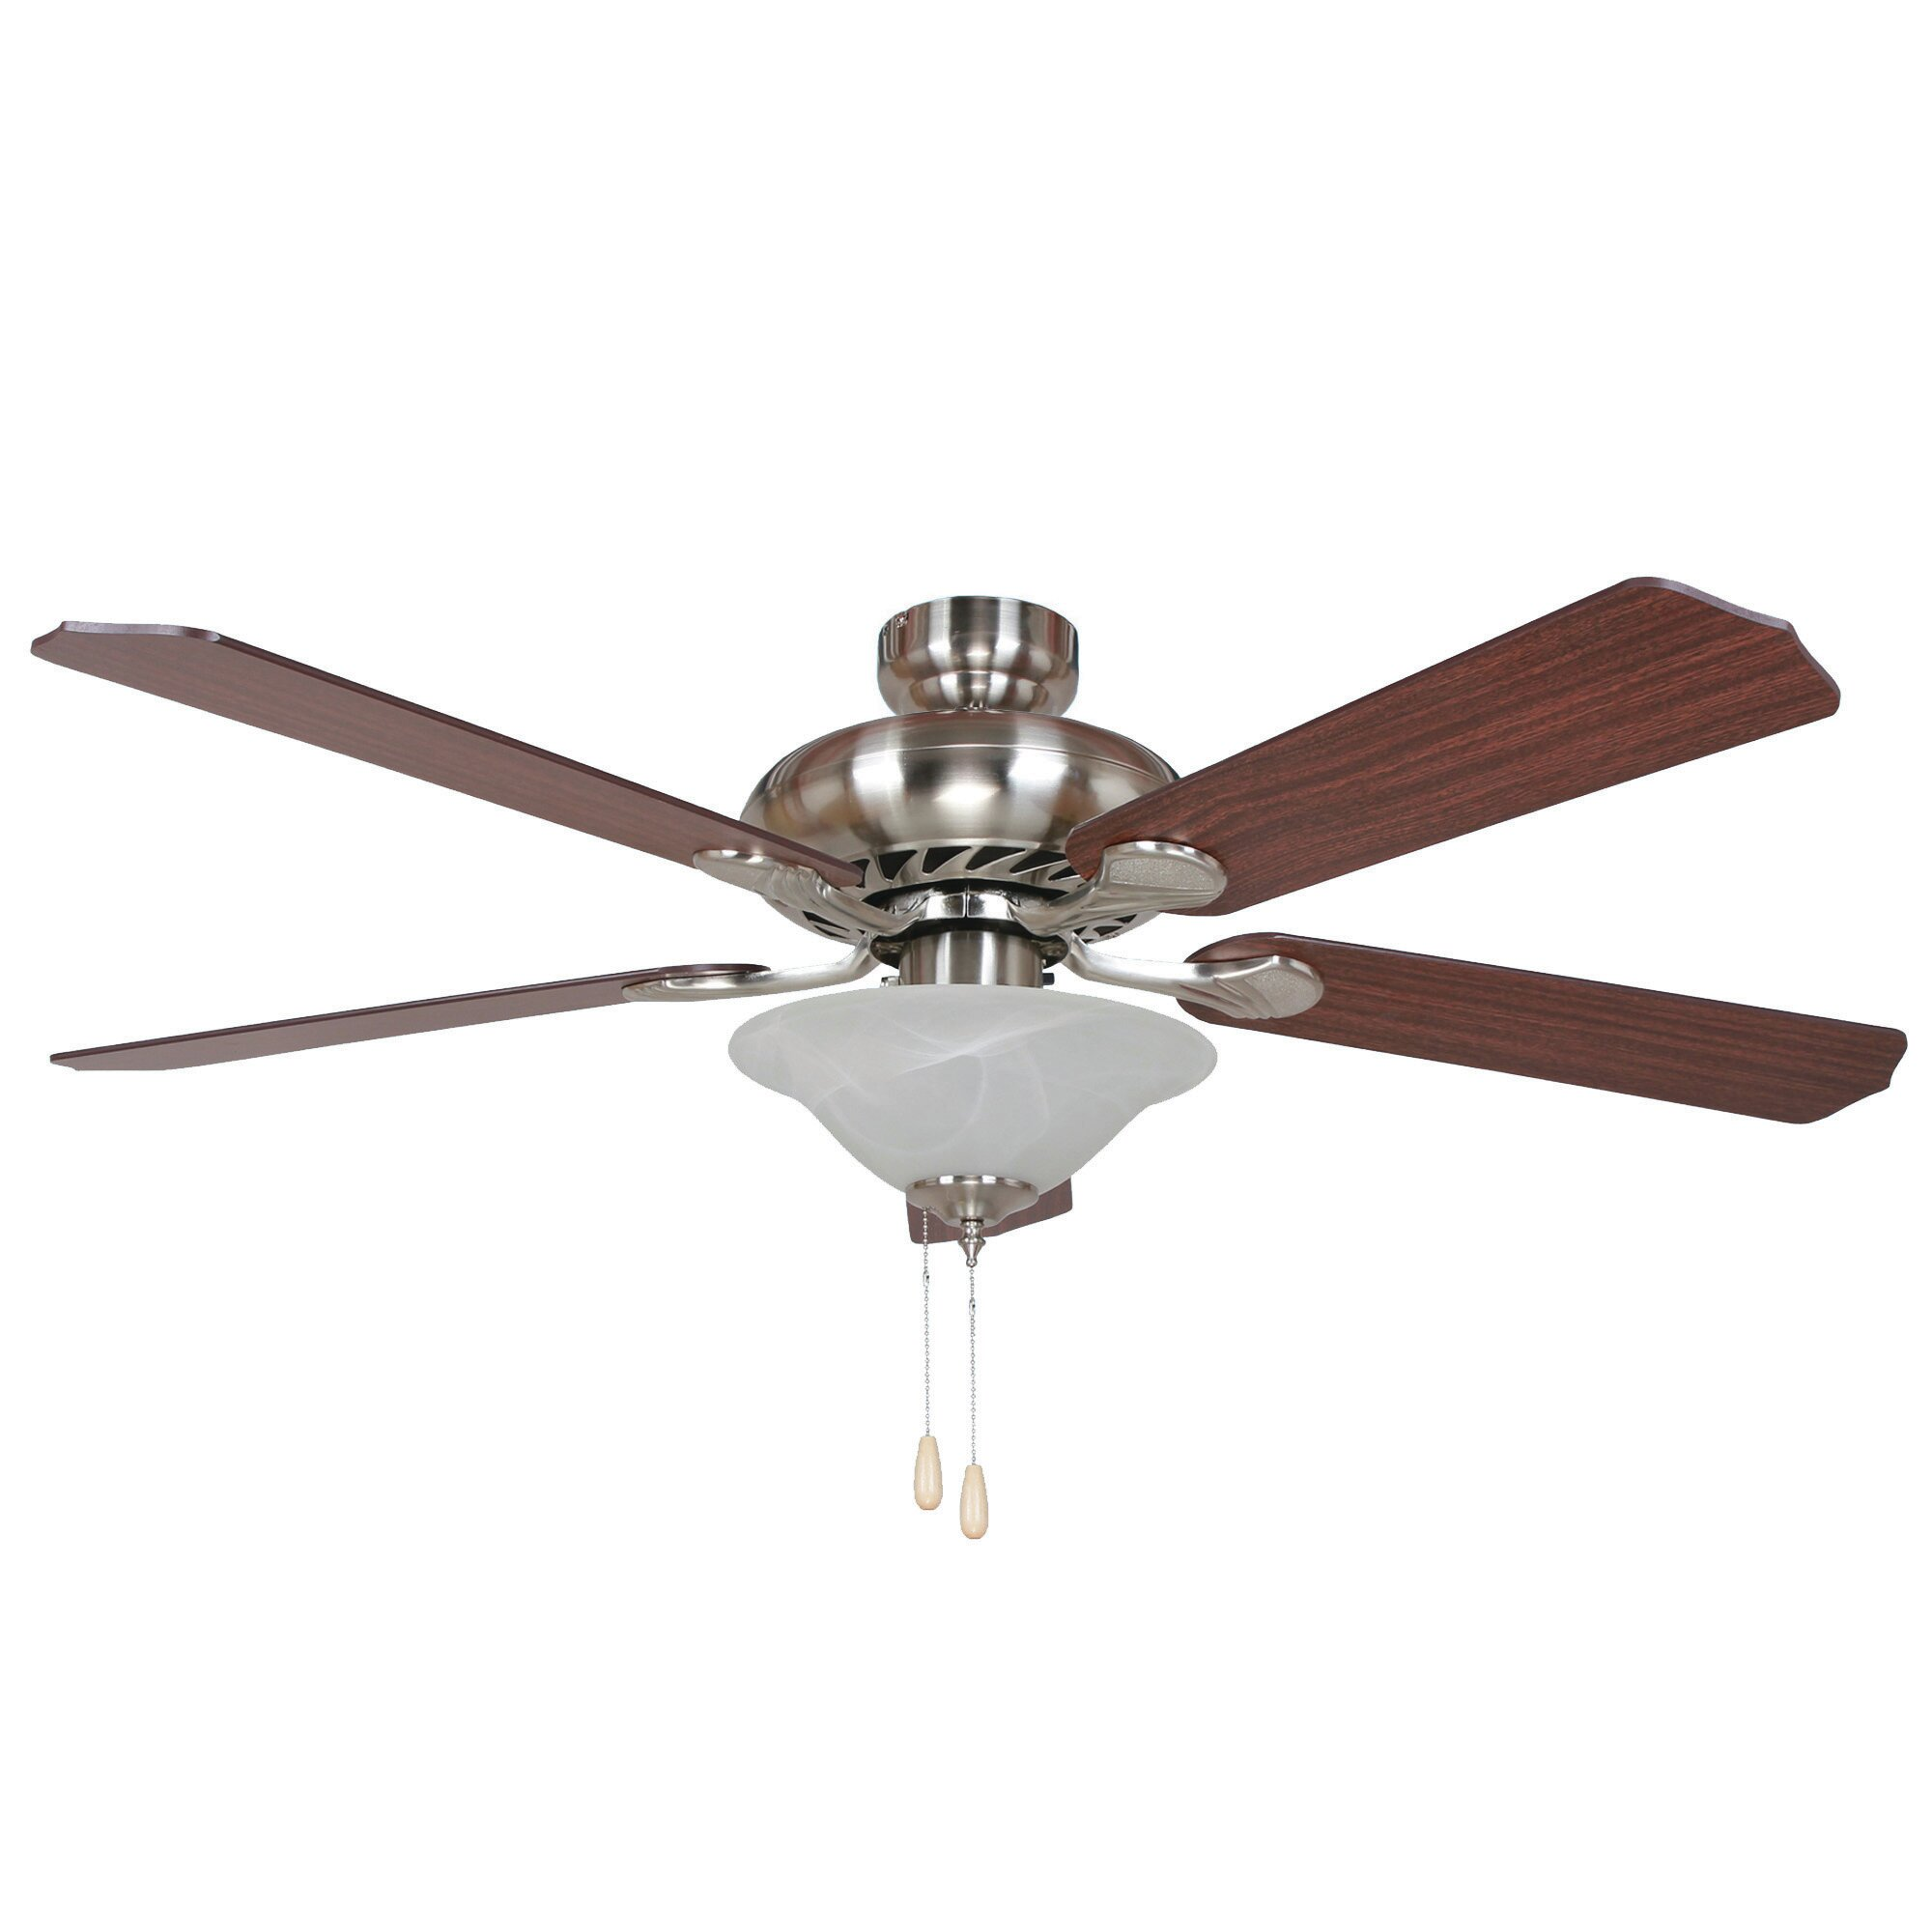 yosemite home decor 52 whitney 5 blade ceiling fan reviews wayfair